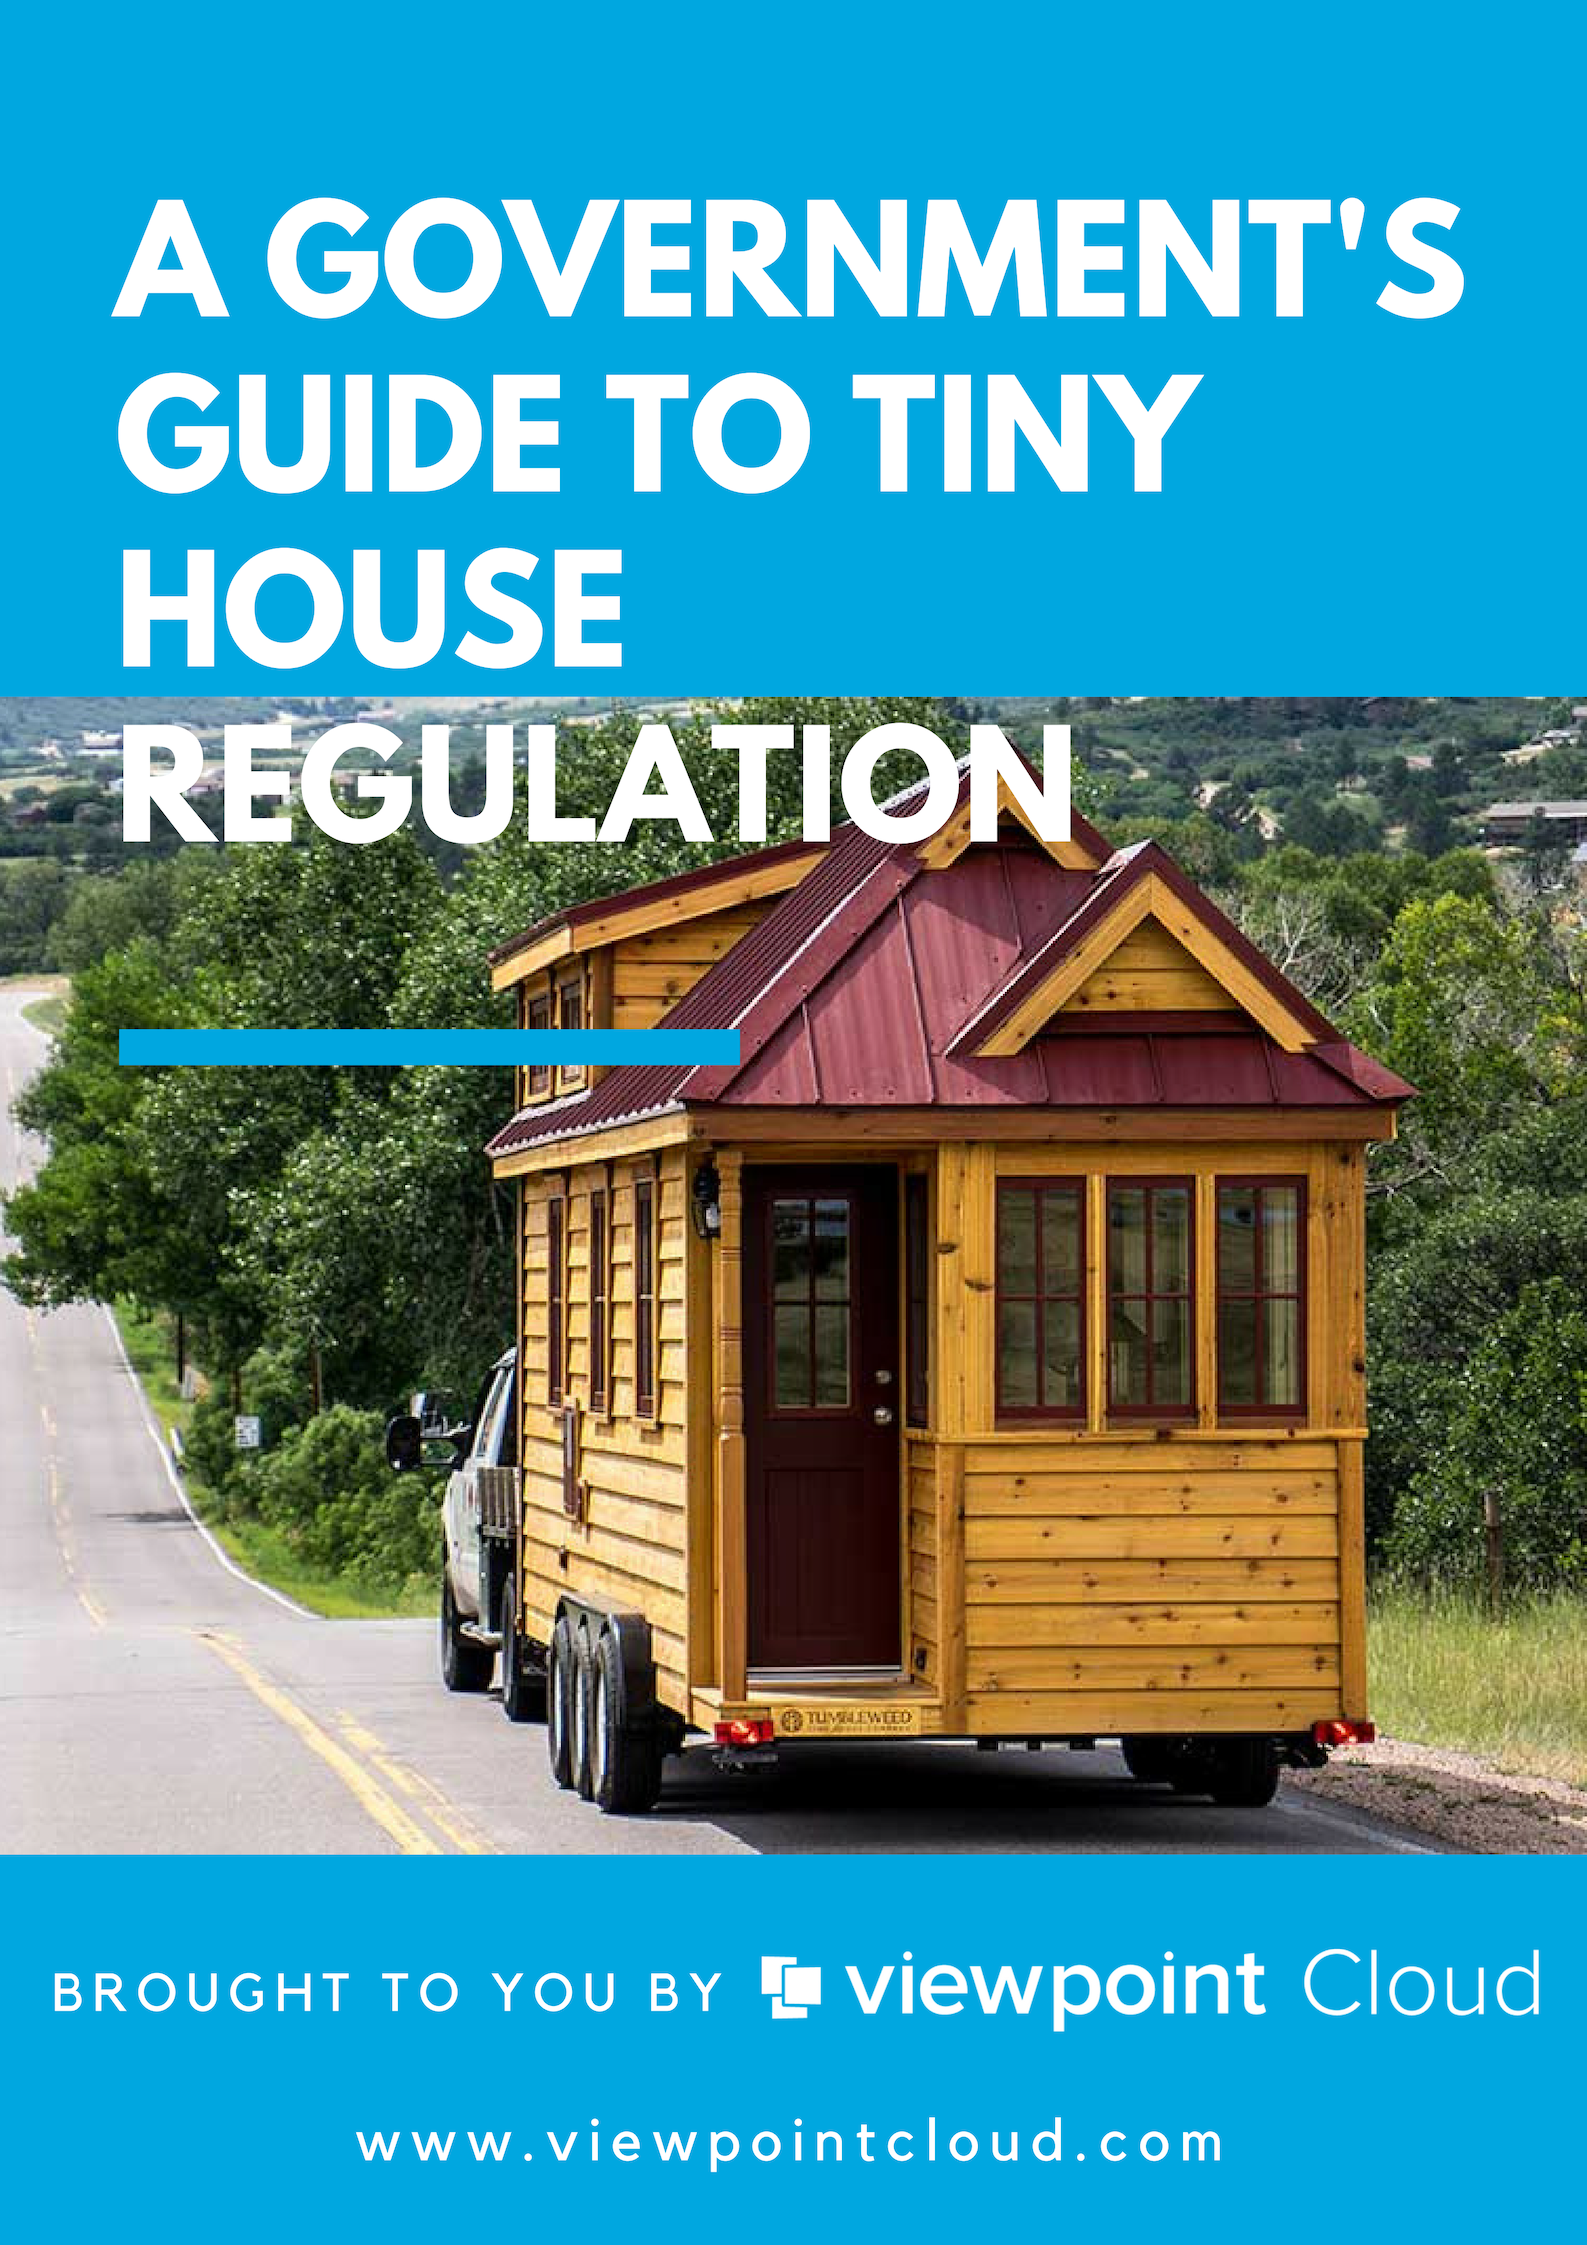 eBook- A Government's Guide to Tiny House Regulation.png